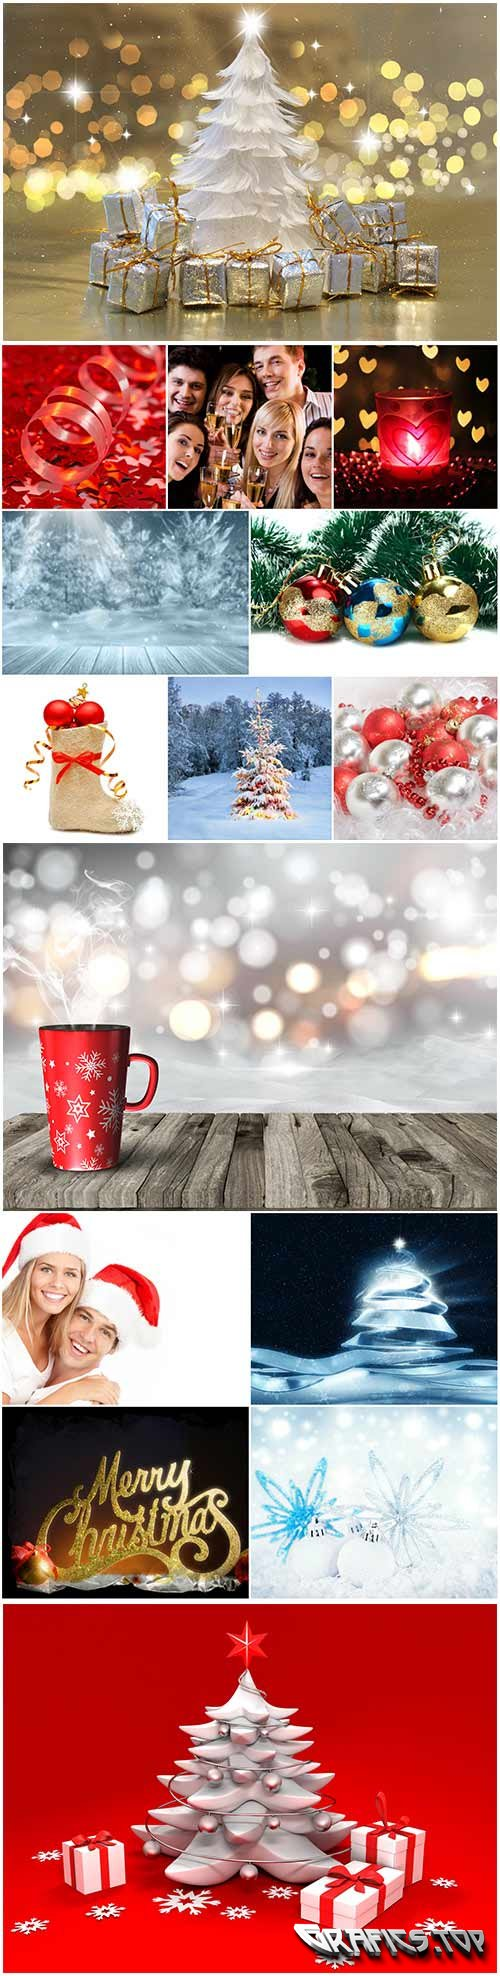 New year raster graphics collection - 14